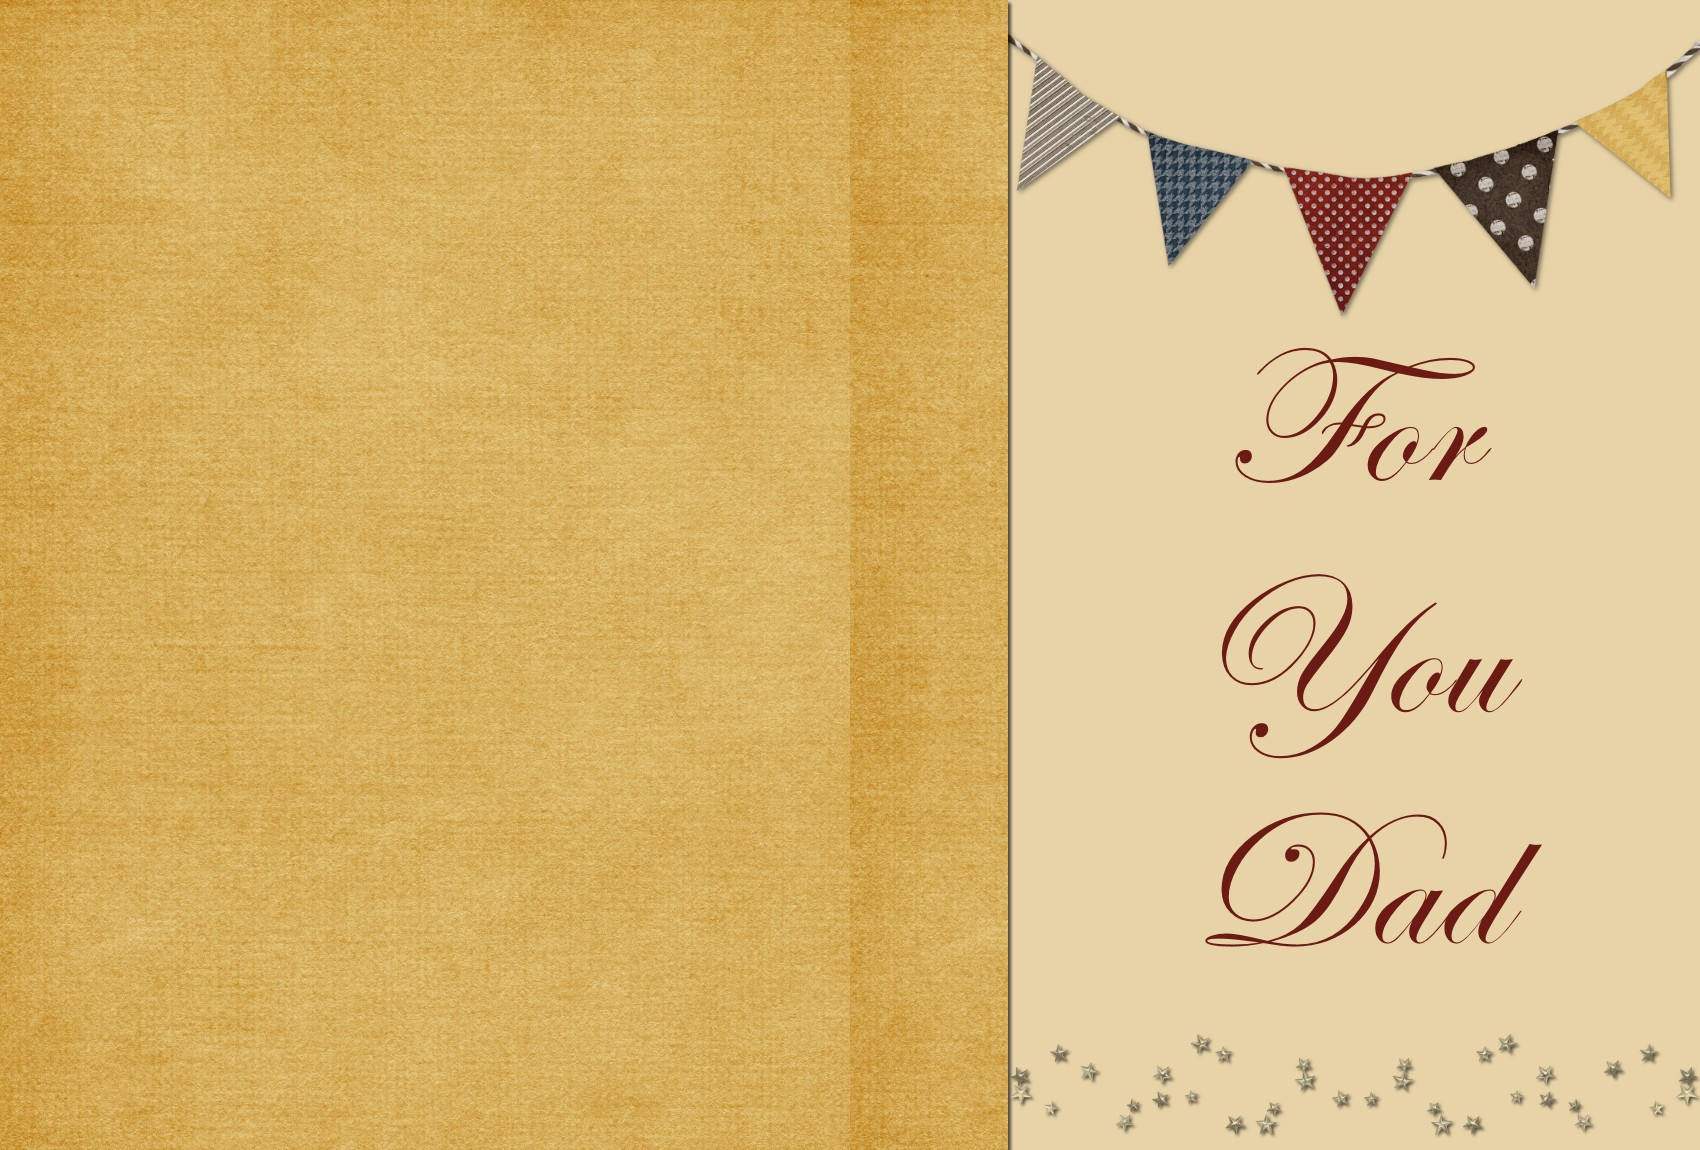 Personalize your greeting cards with paintshop pro corel blogs fathers day card kristyandbryce Gallery